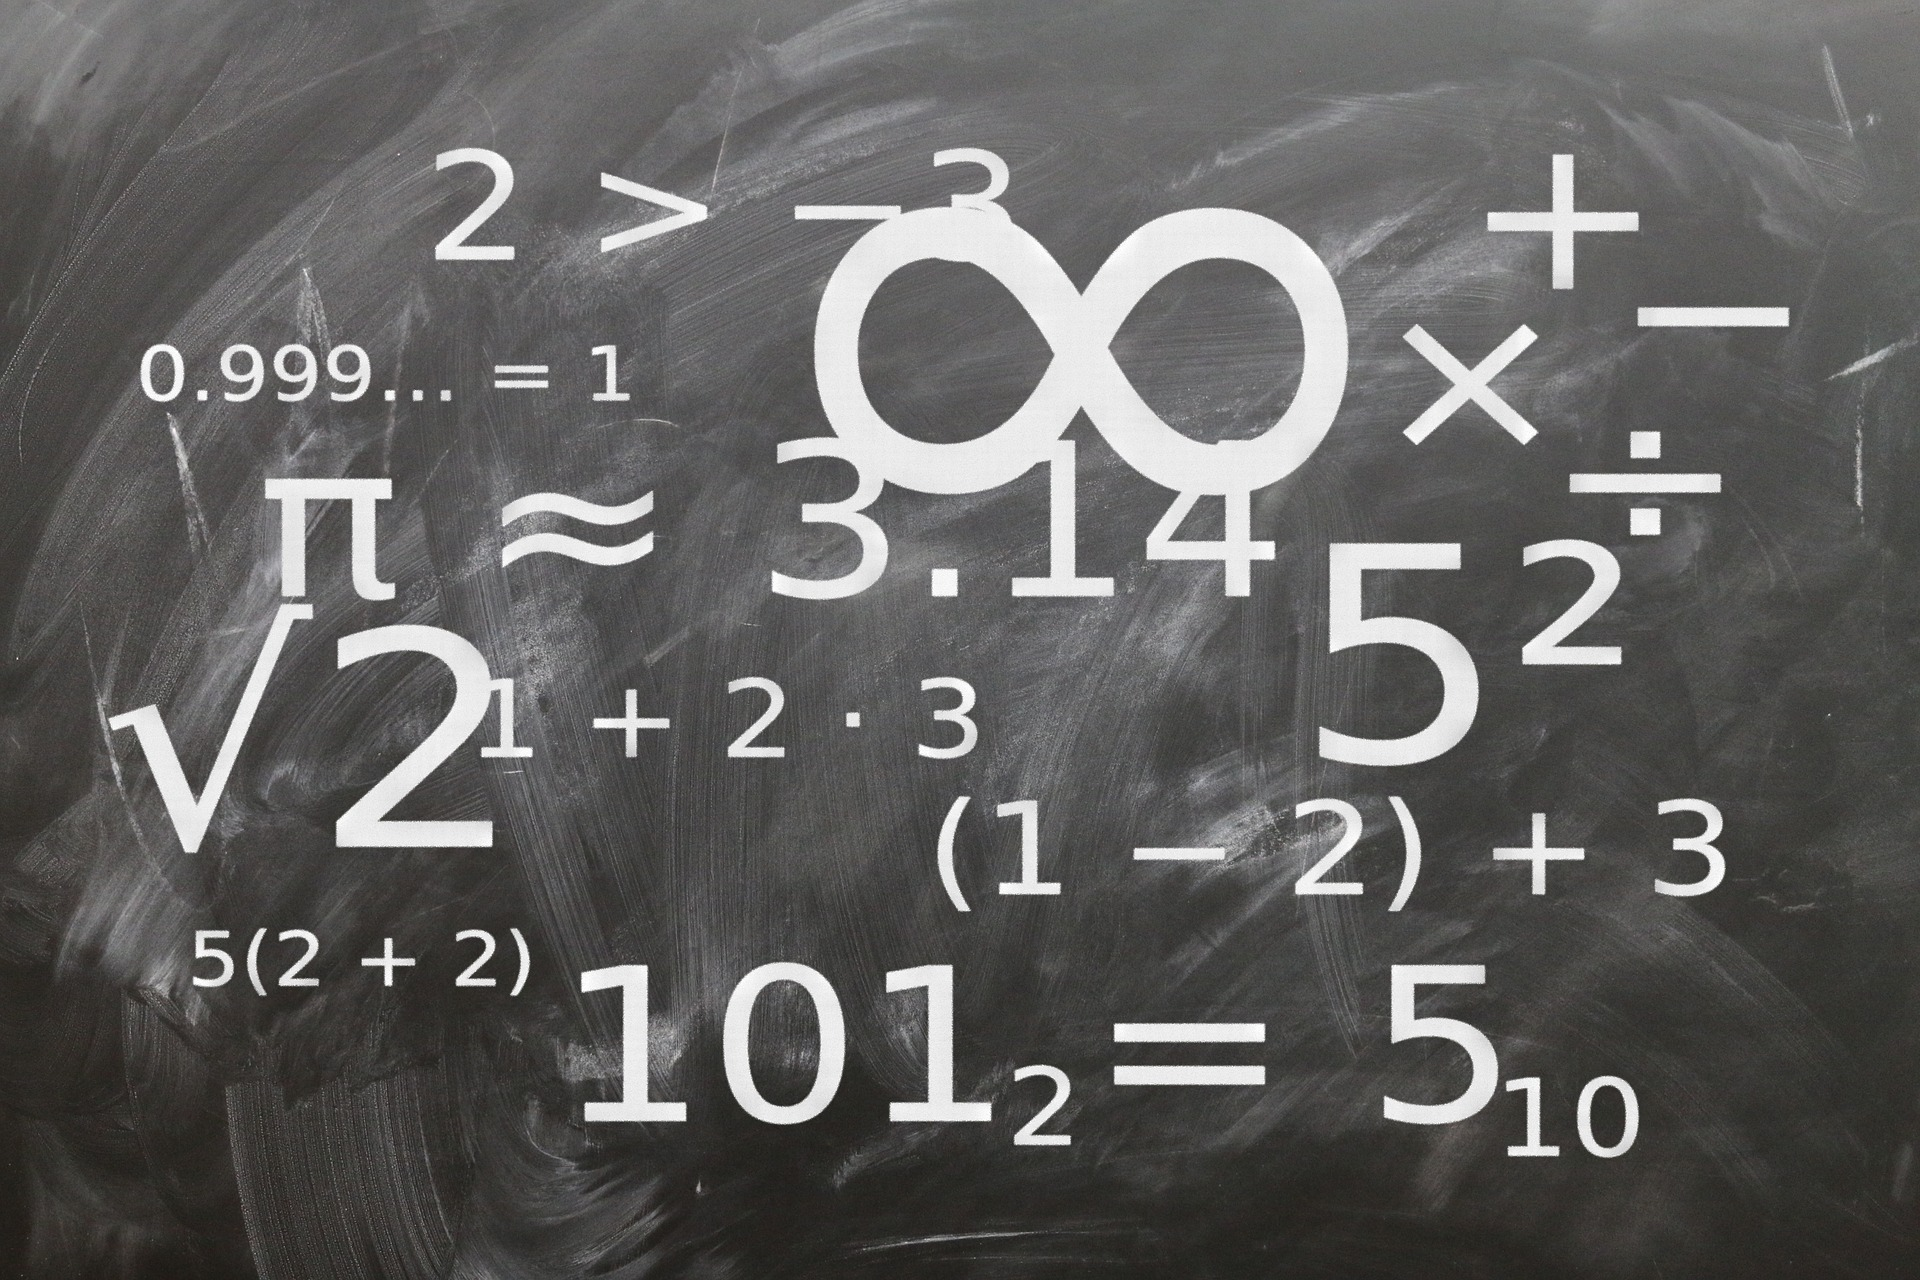 Numbers, mathematical expression, and infinity symbol on black chalkboard